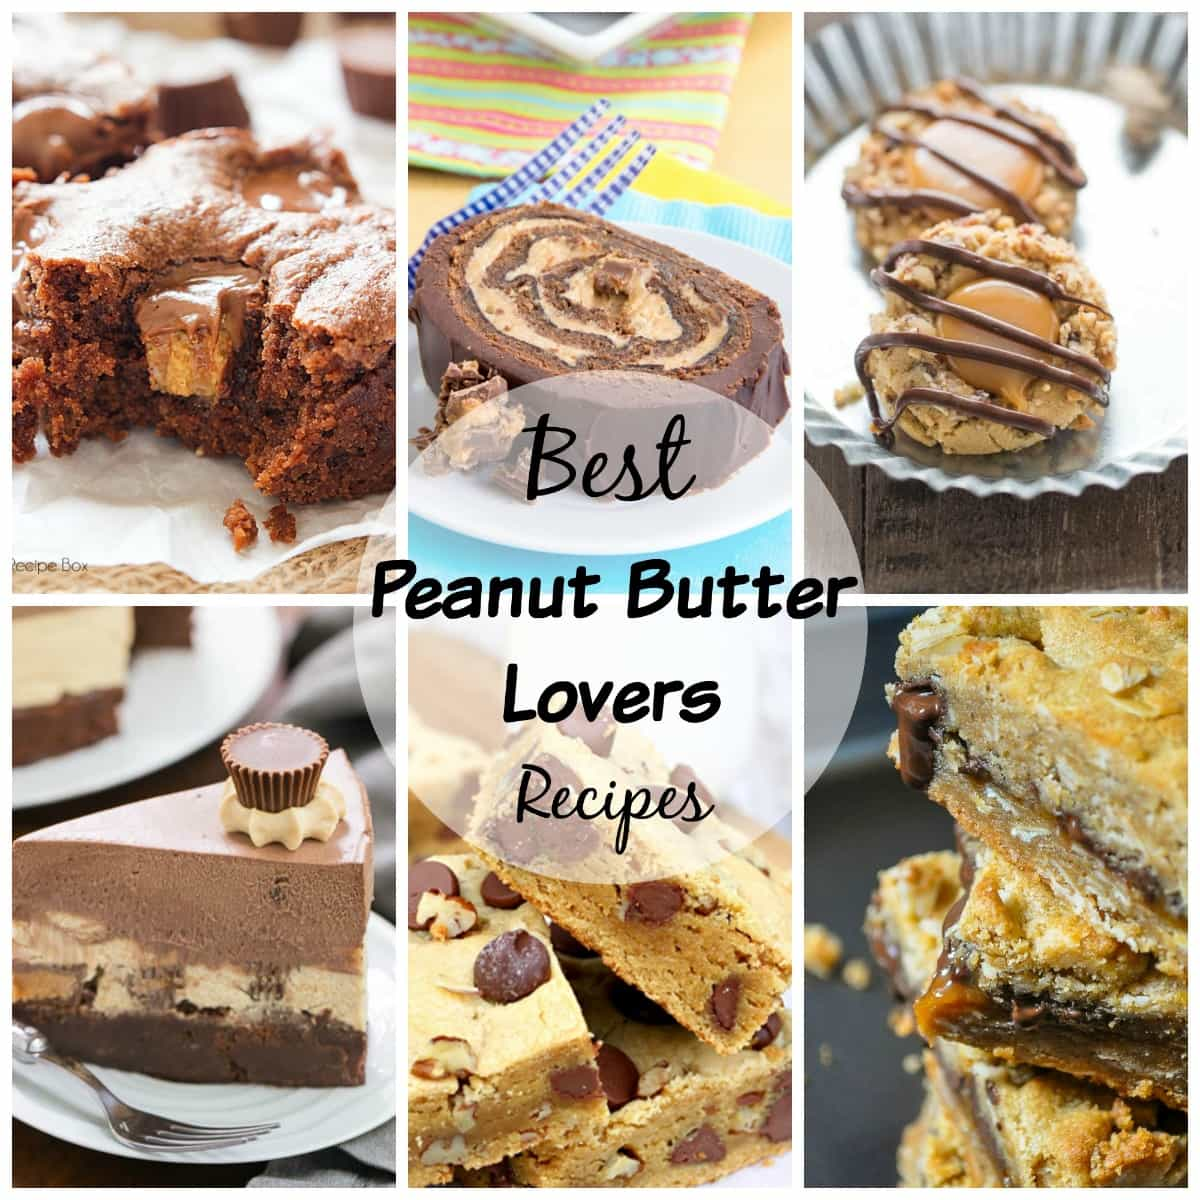 Peanut butter recipe lovers rejoice! This round up is just for you!